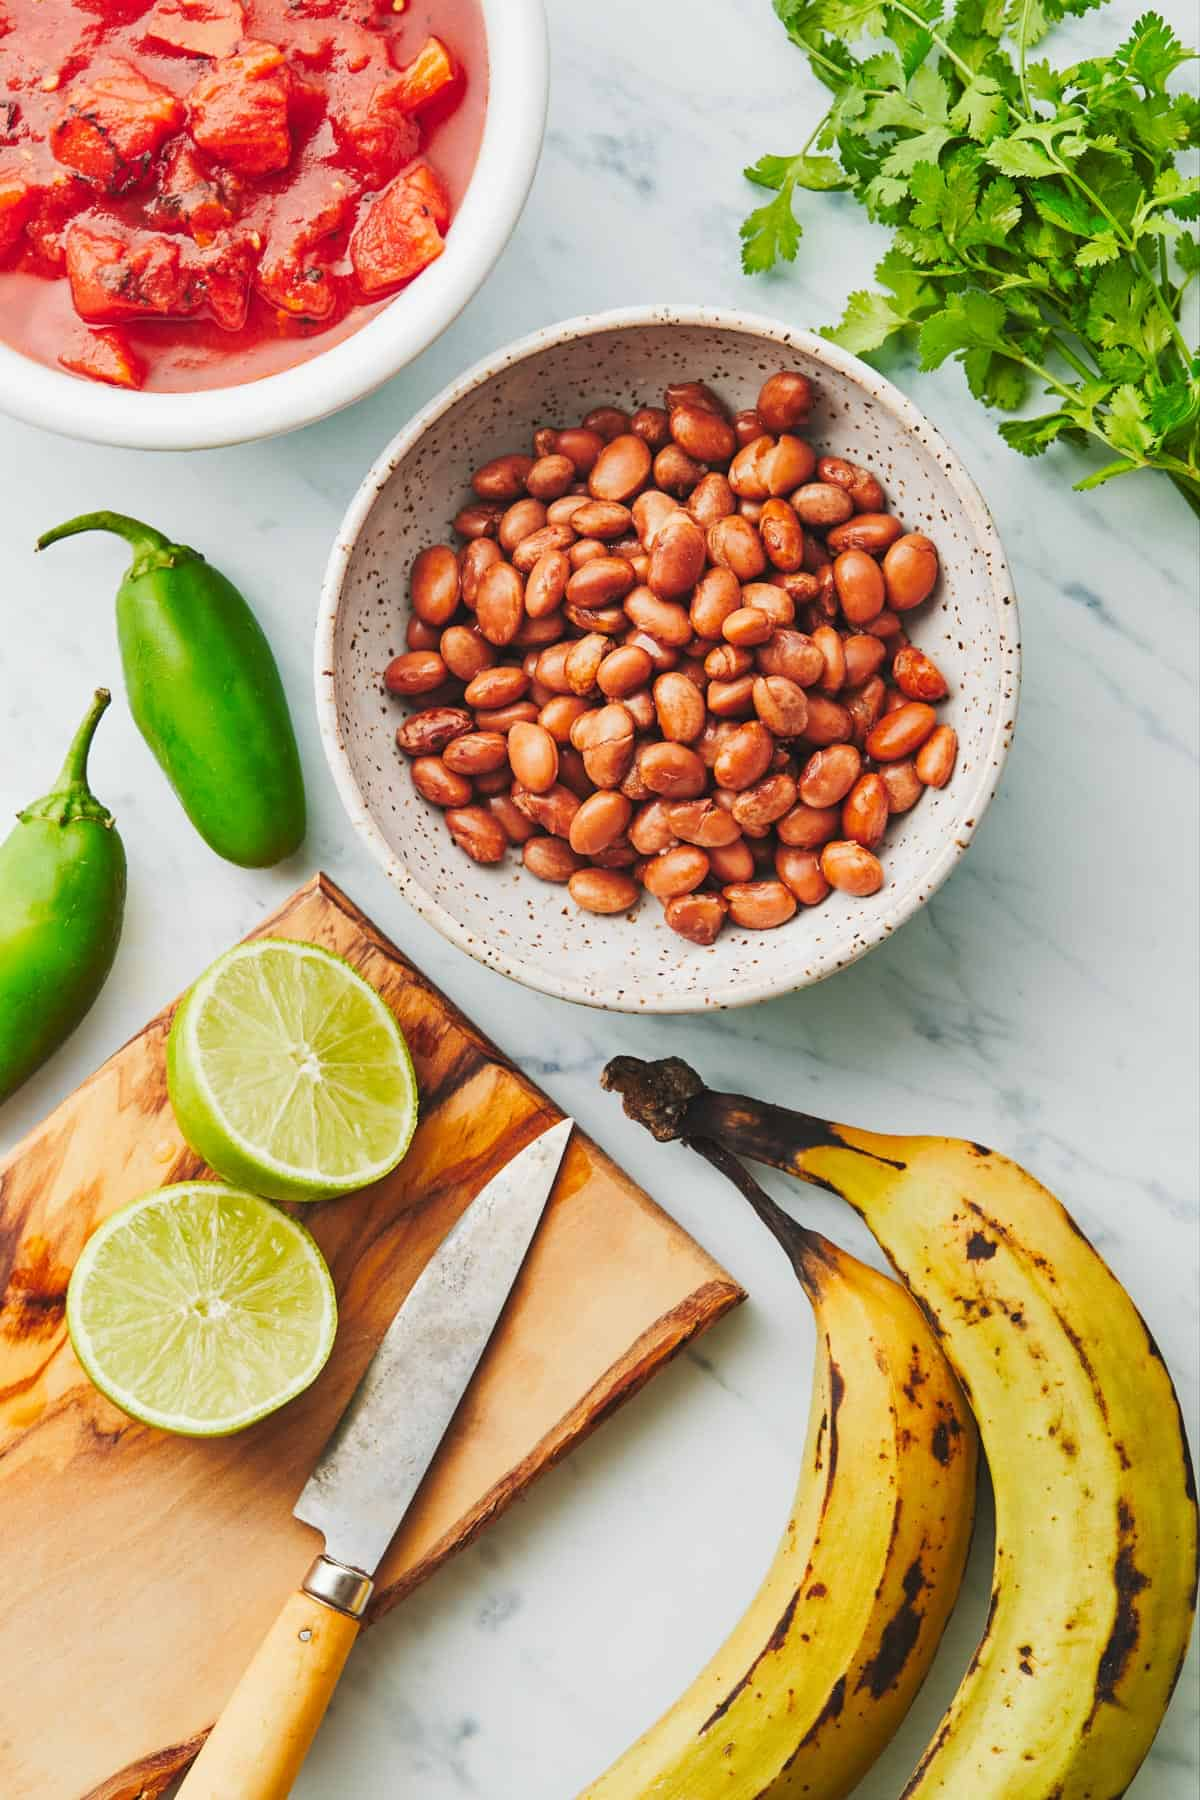 Tomatoes, pinto beans, jalapeños, lime, plantains, and cilantro on a cutting board.